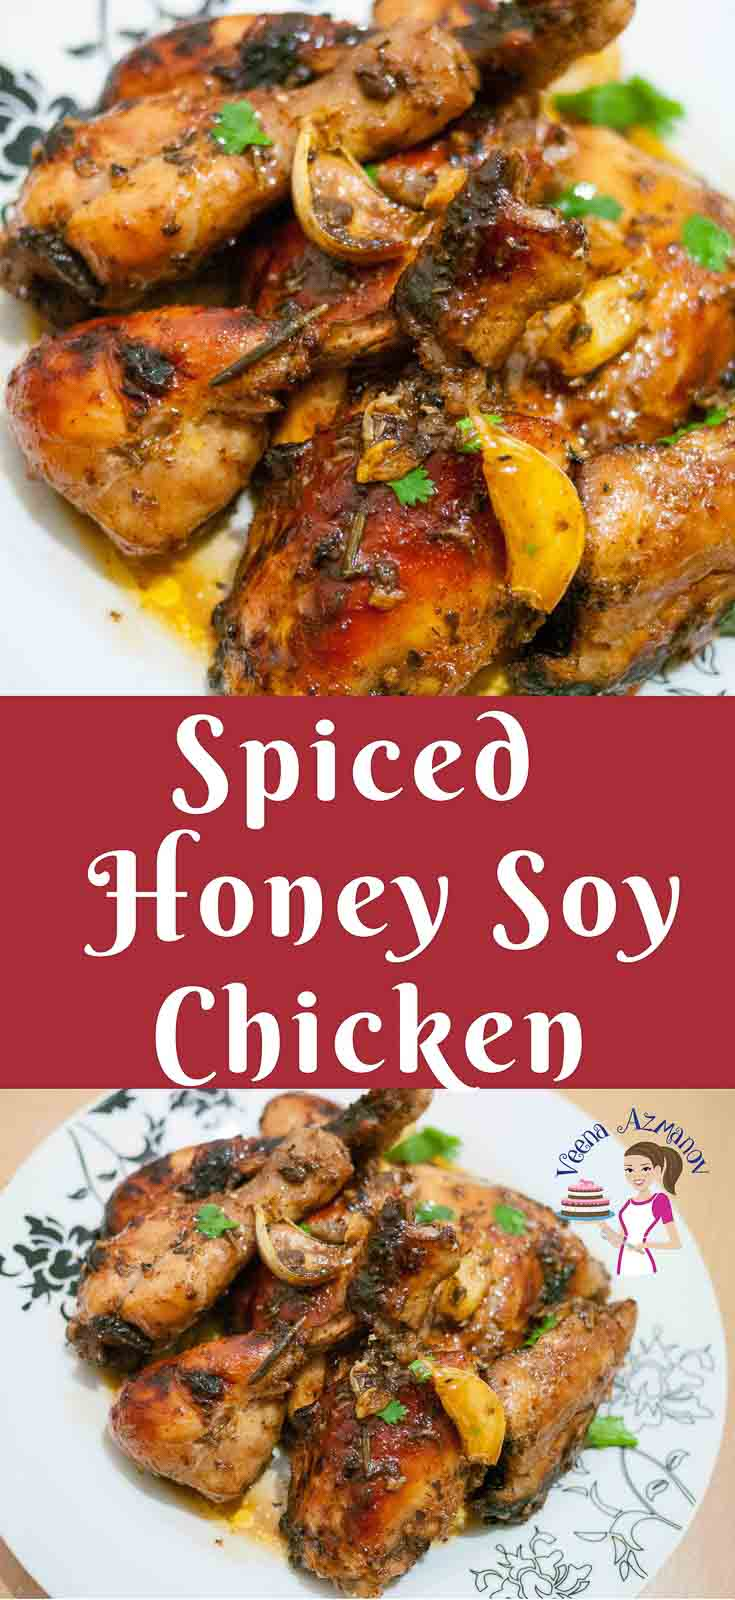 This spiced honey soy chicken is a perfect blend of hot and sweet. Marinated with ginger, garlic and some warm spices this chicken is full of flavor and color. Simple easy and effortless recipe that can be made on a busy week night or lazy weekend lunch.